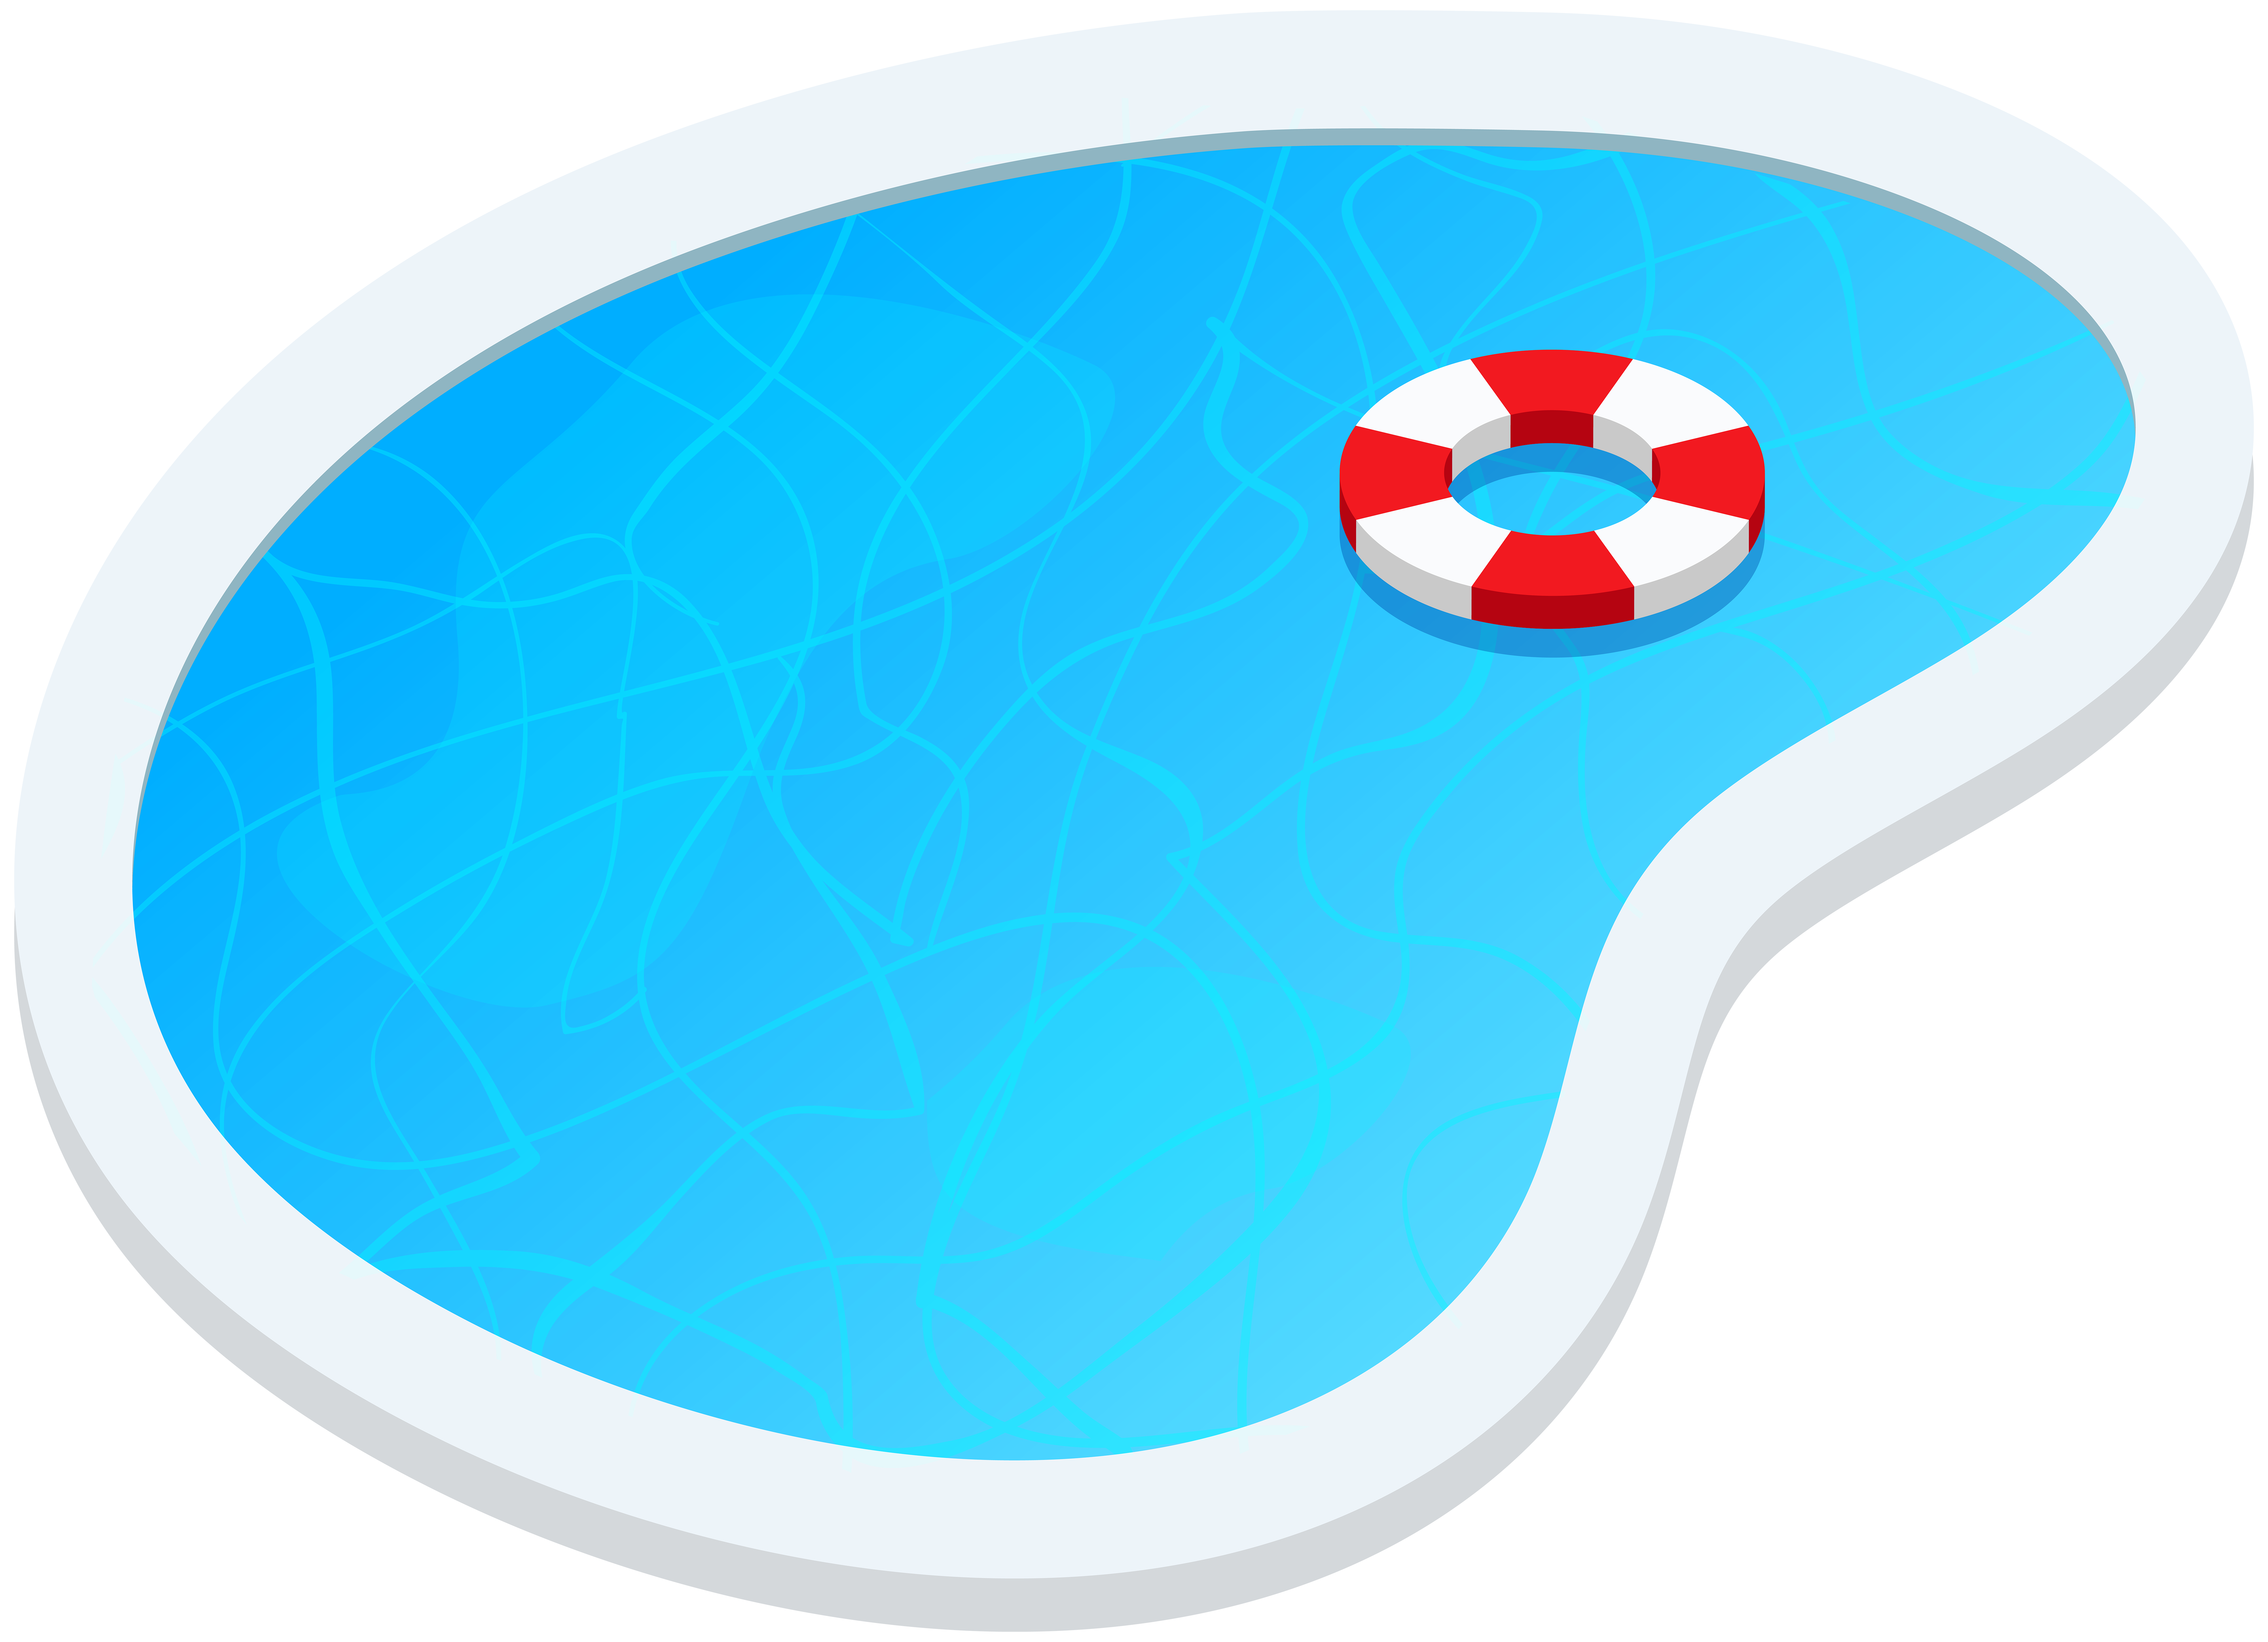 picture free download Pool clipart. Swimming oval png clip.